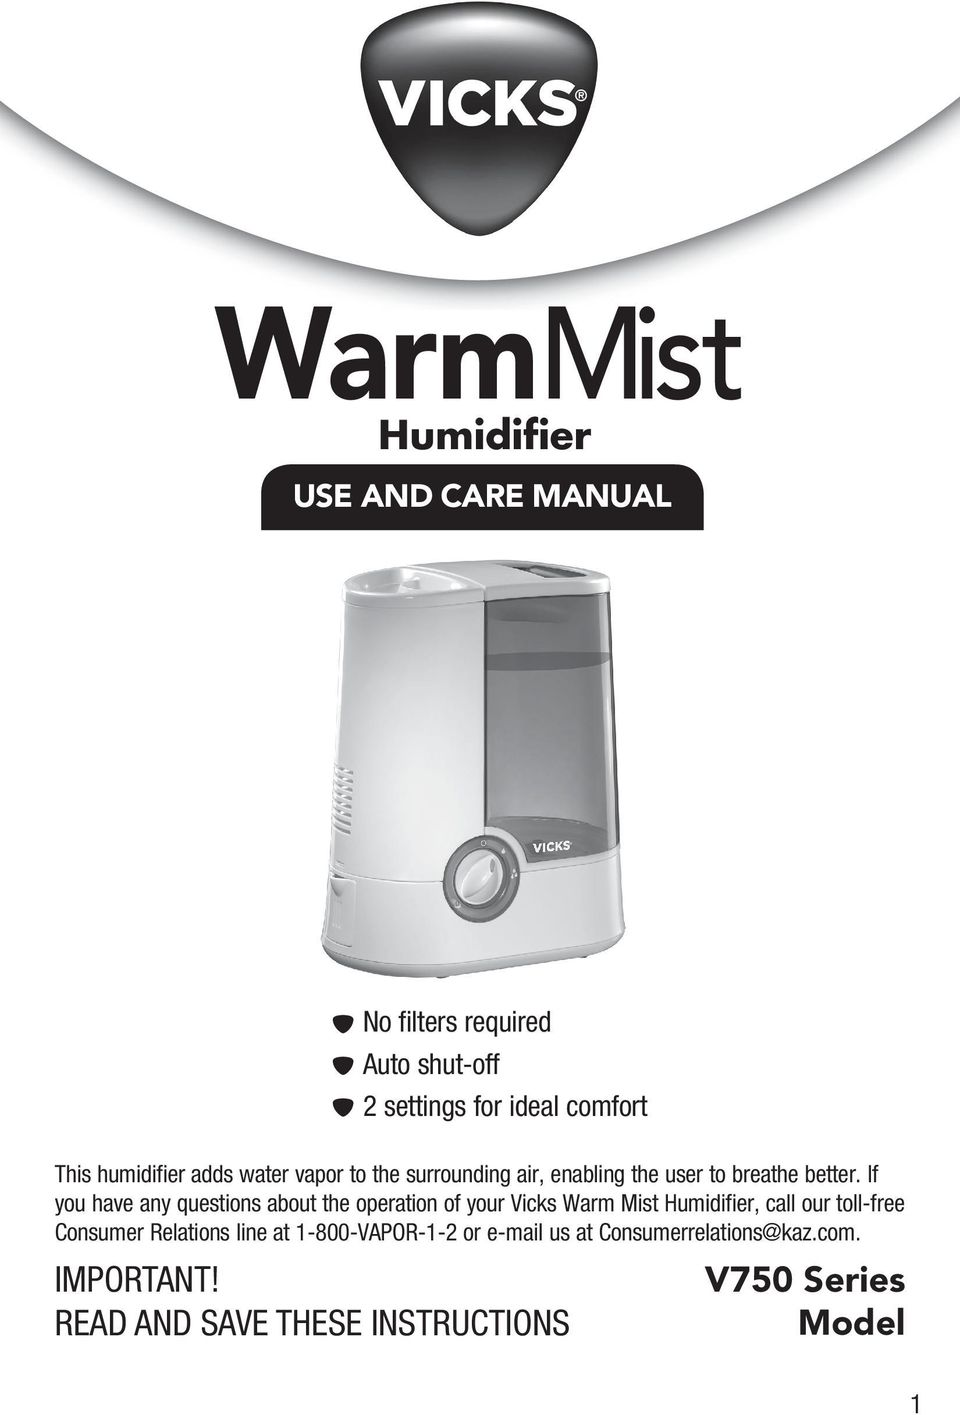 If you have any questions about the operation of your Vicks Warm Mist Humidifier, call our toll-free Consumer